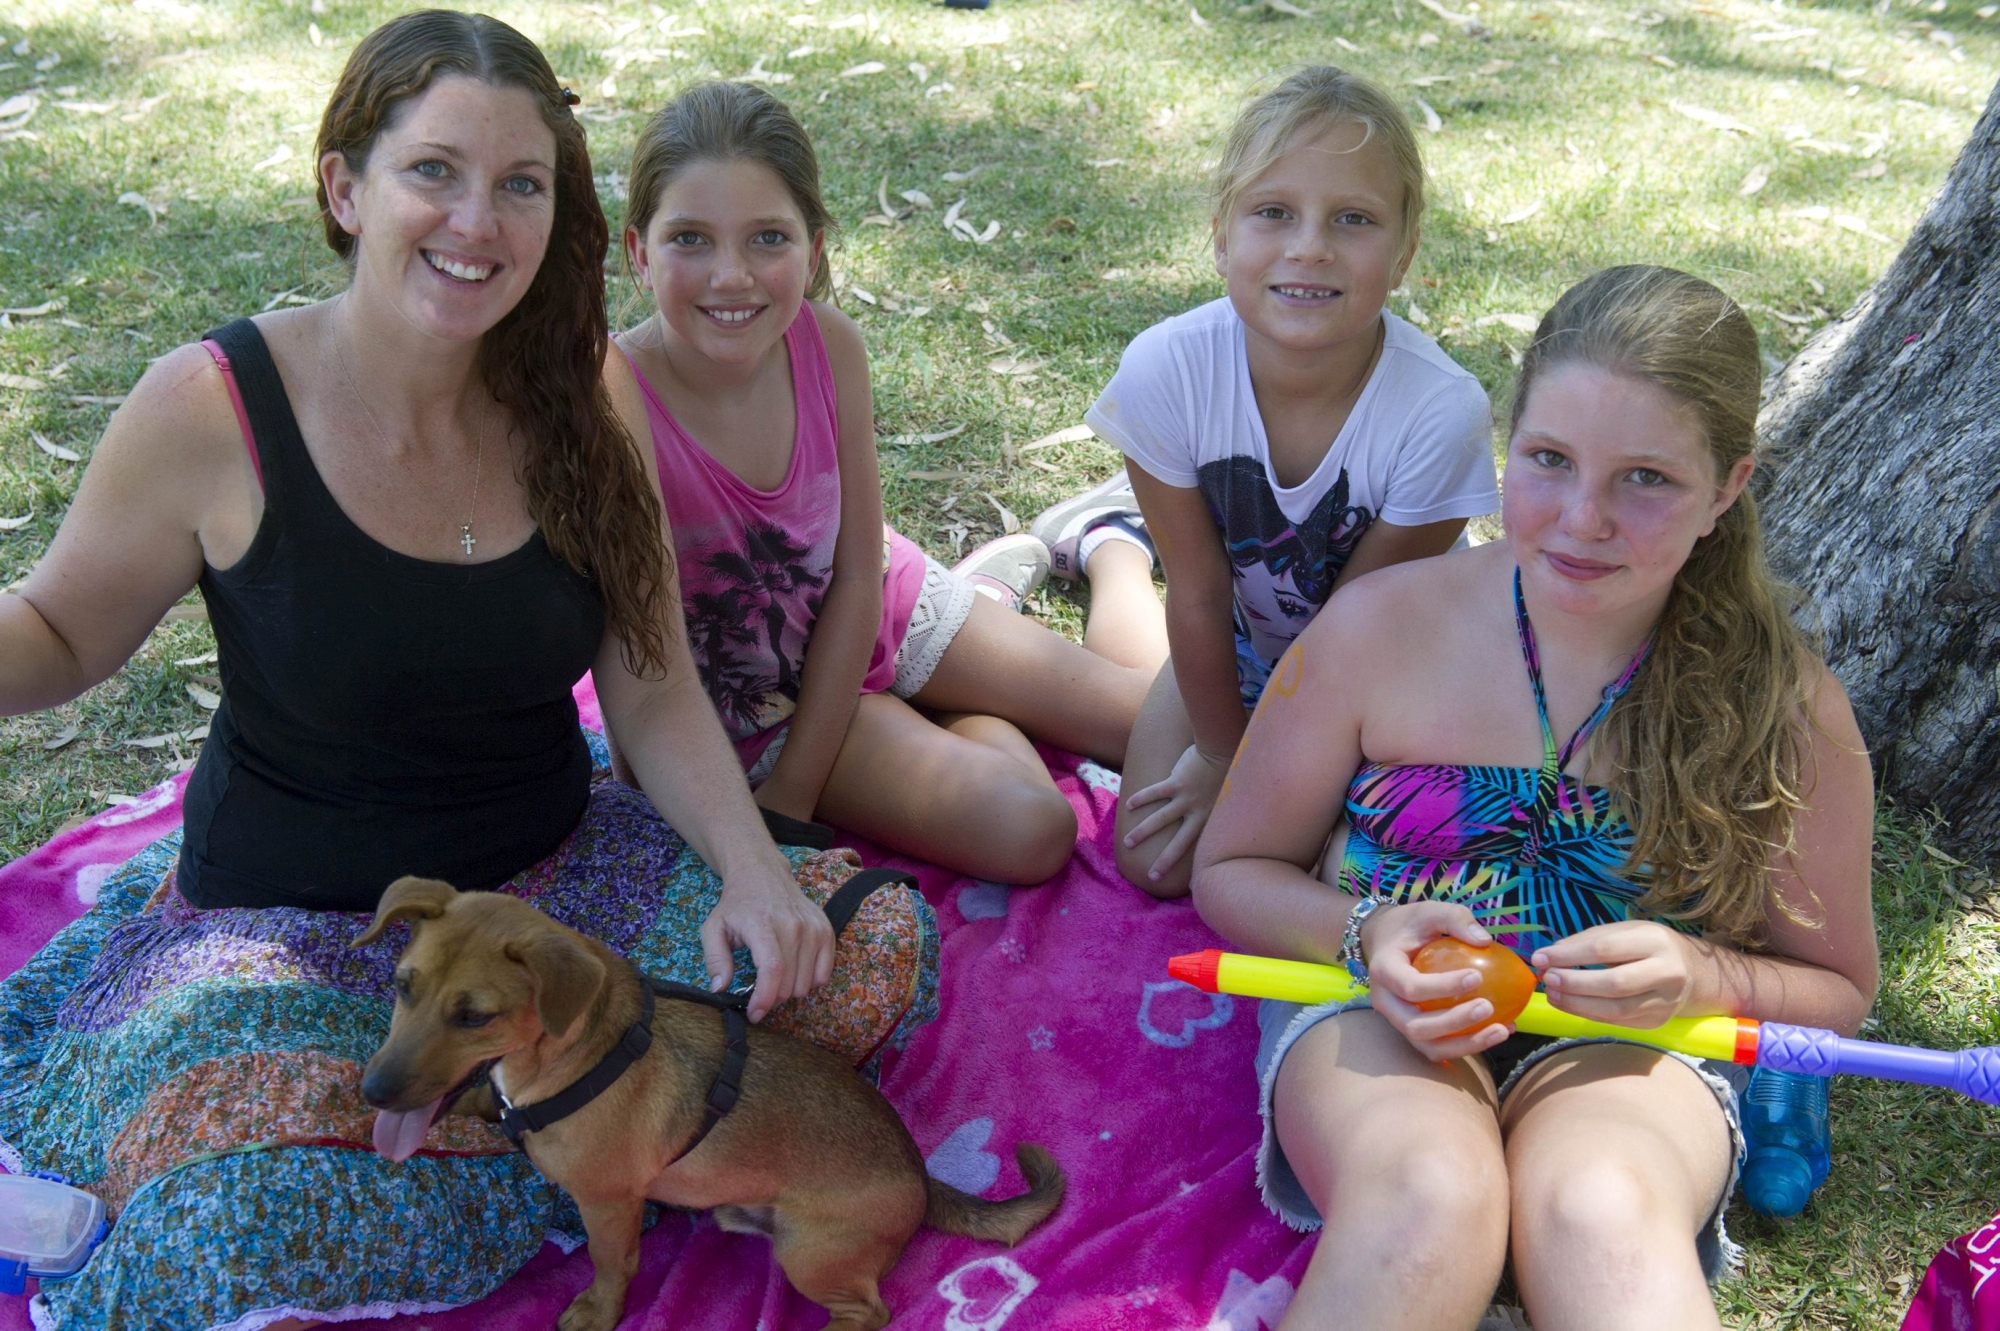 From Left: Abby Geddes, Mya Kelly (10 yrs), Jessica Robinson (8 yrs), Kayla Kelly (12 yrs) at the Pay It Forward picnic